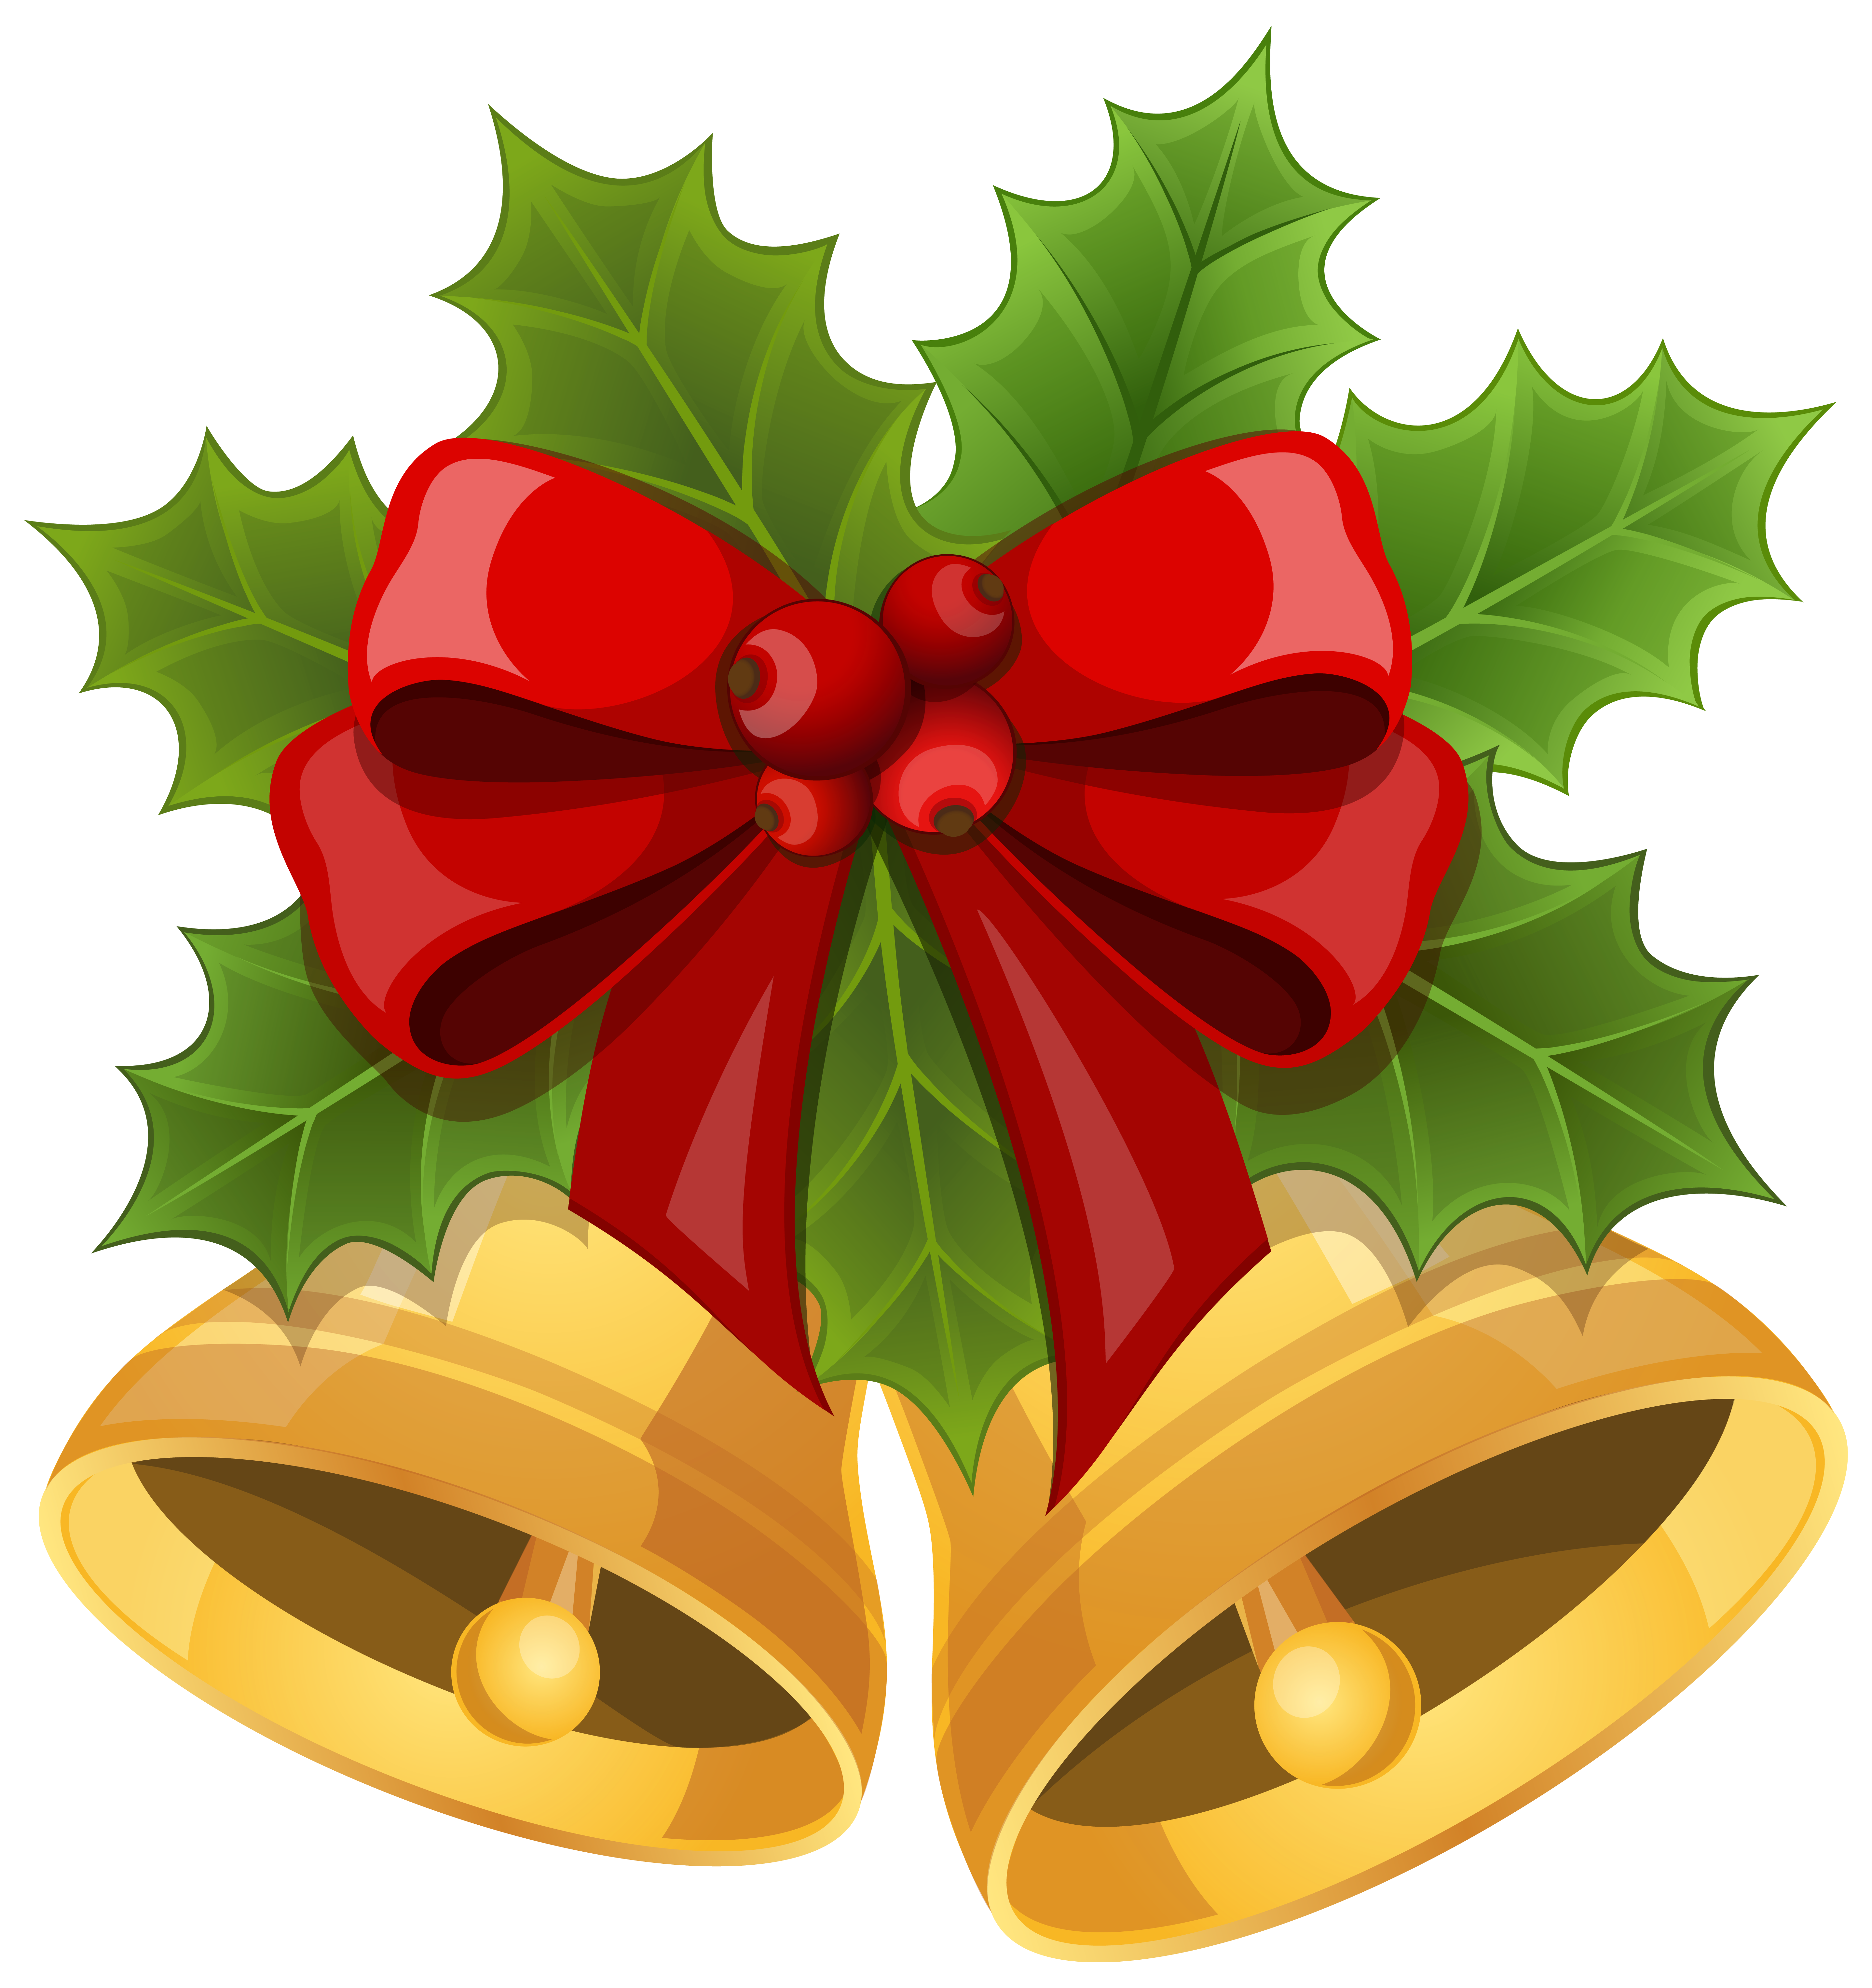 Bows clipart xmas. Christmas bells with bow